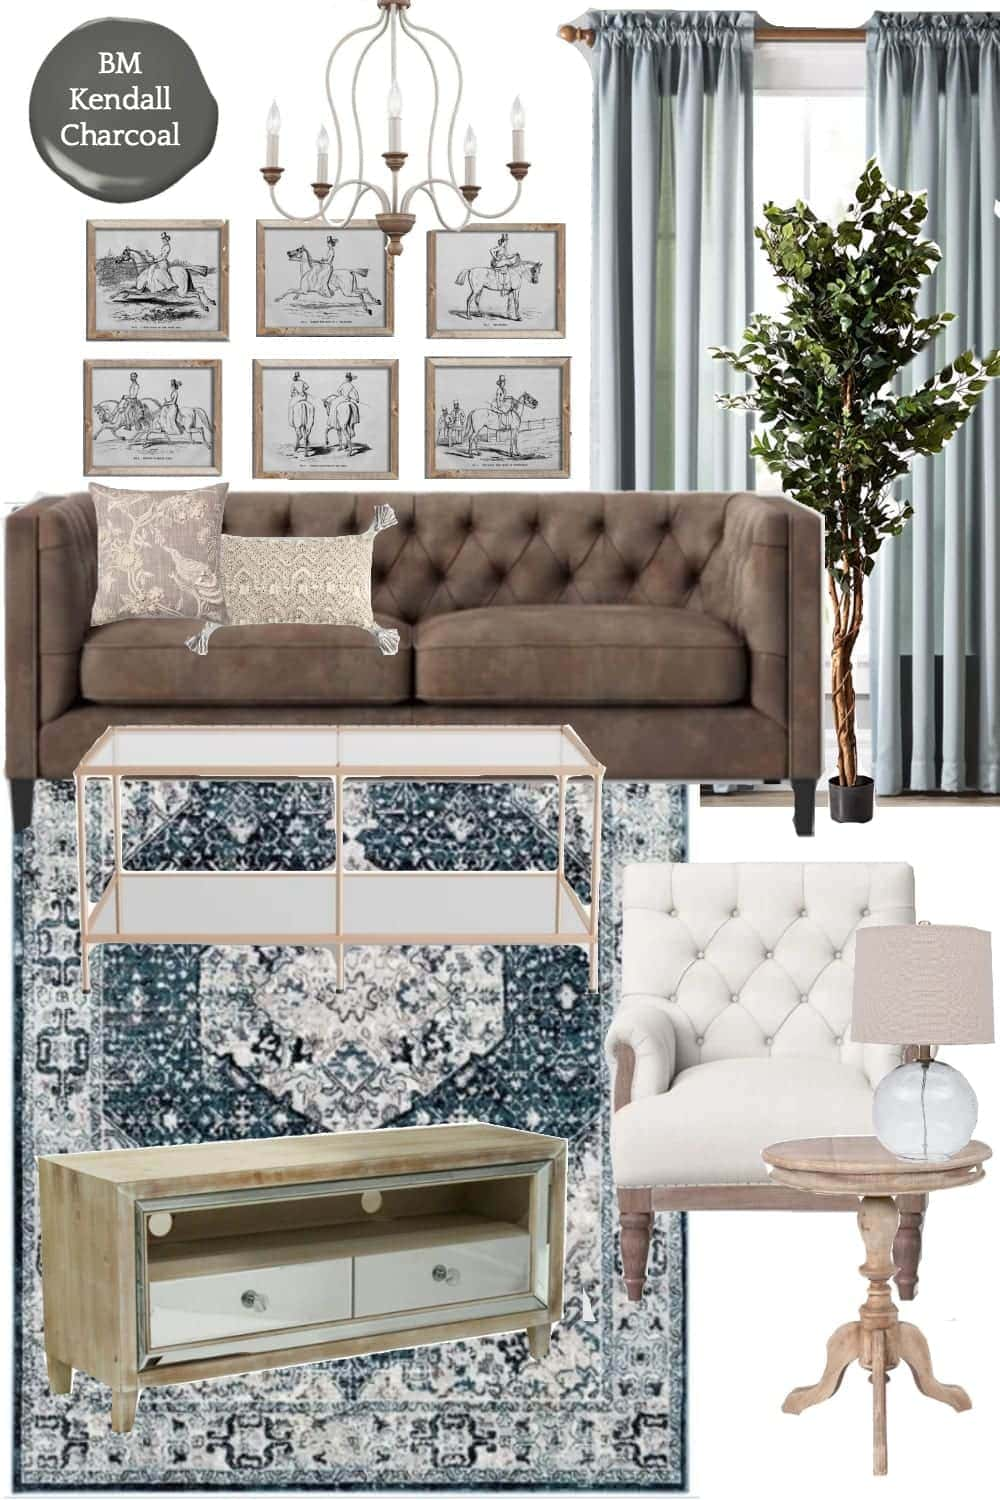 3 Living Room Design Mood Boards Under $2,000 | Modern Rustic French